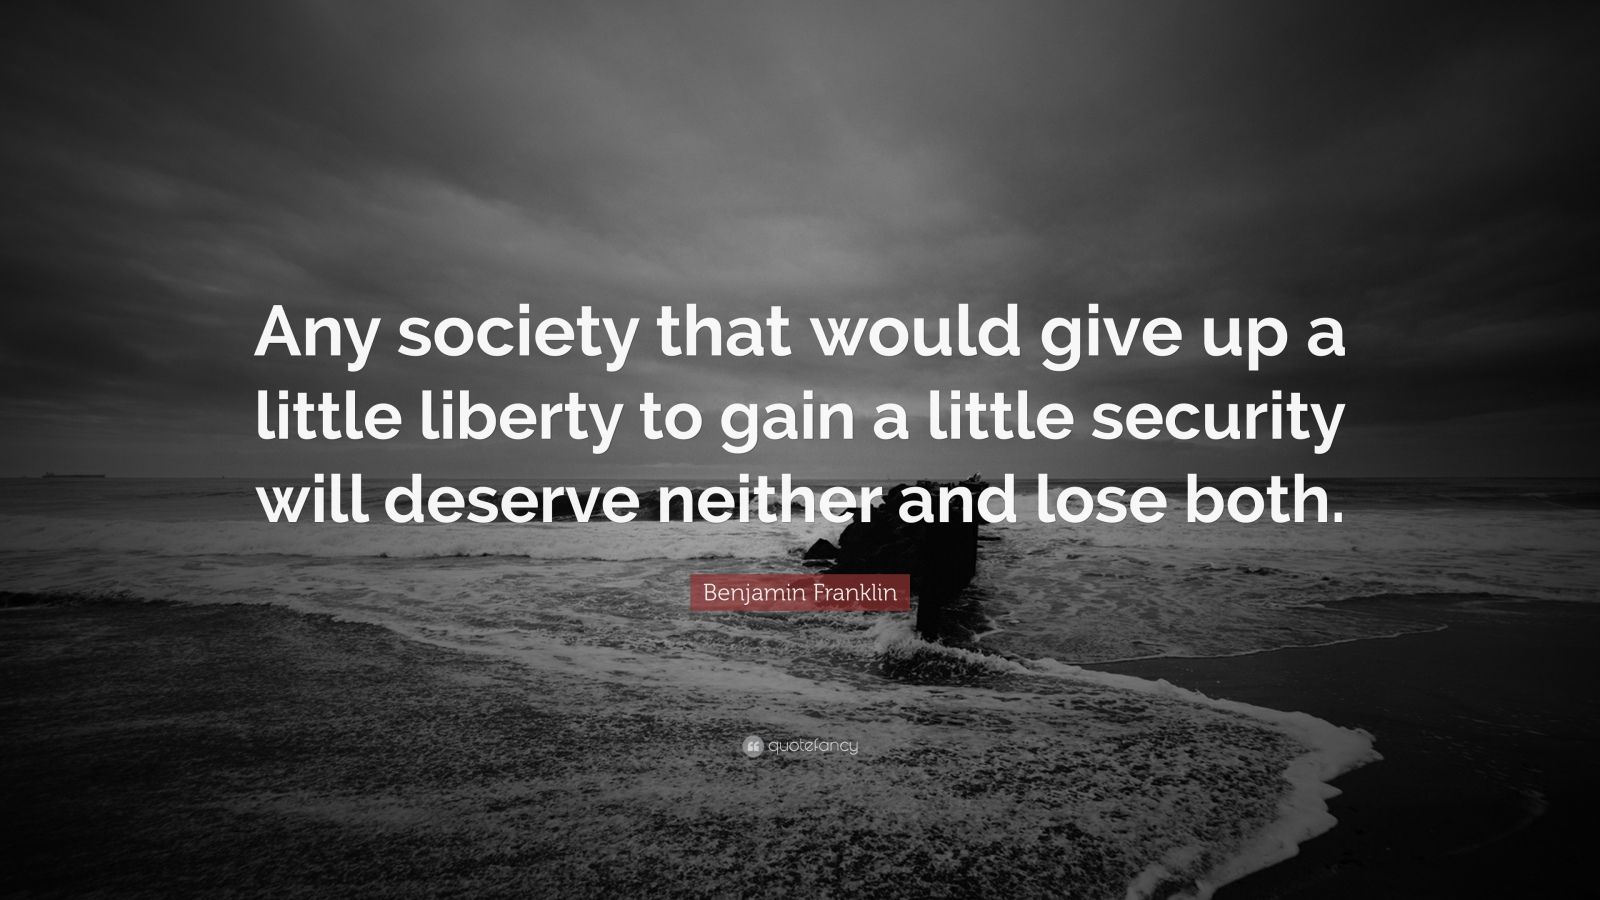 Douglas Adams Quotes Wallpaper Benjamin Franklin Quote Any Society That Would Give Up A